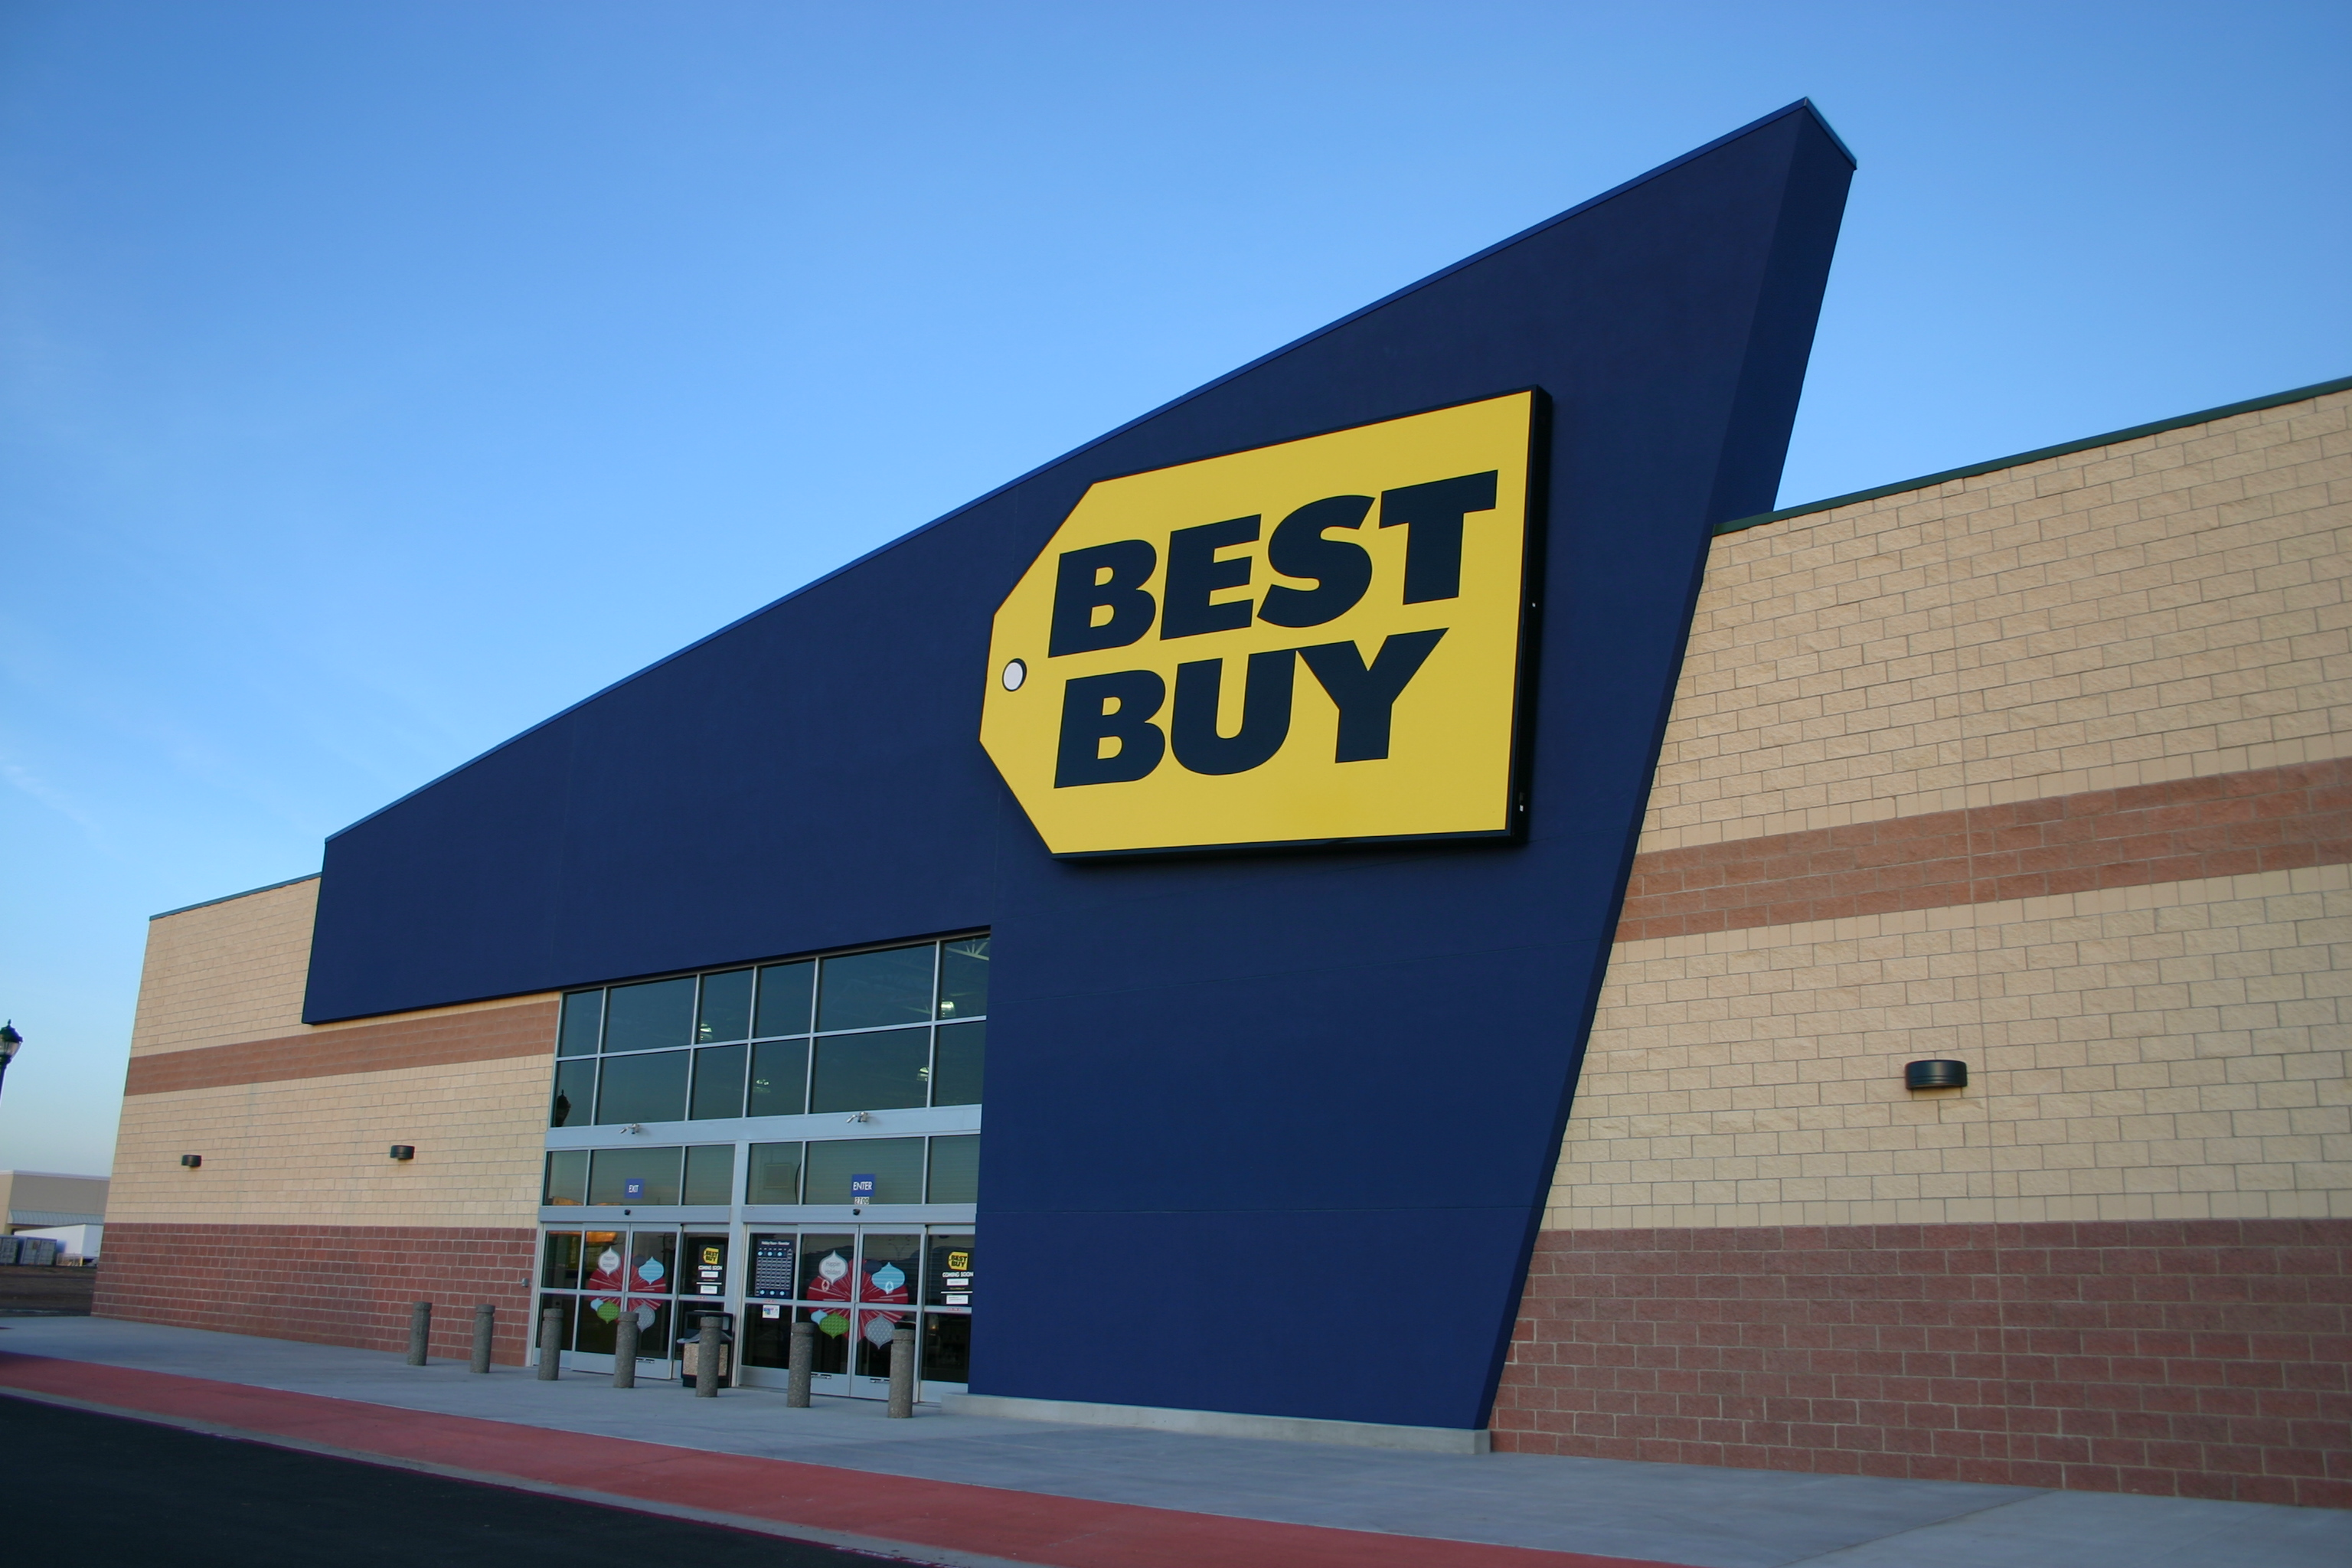 best buy joins att and apple stores in selling out of iphone 4s